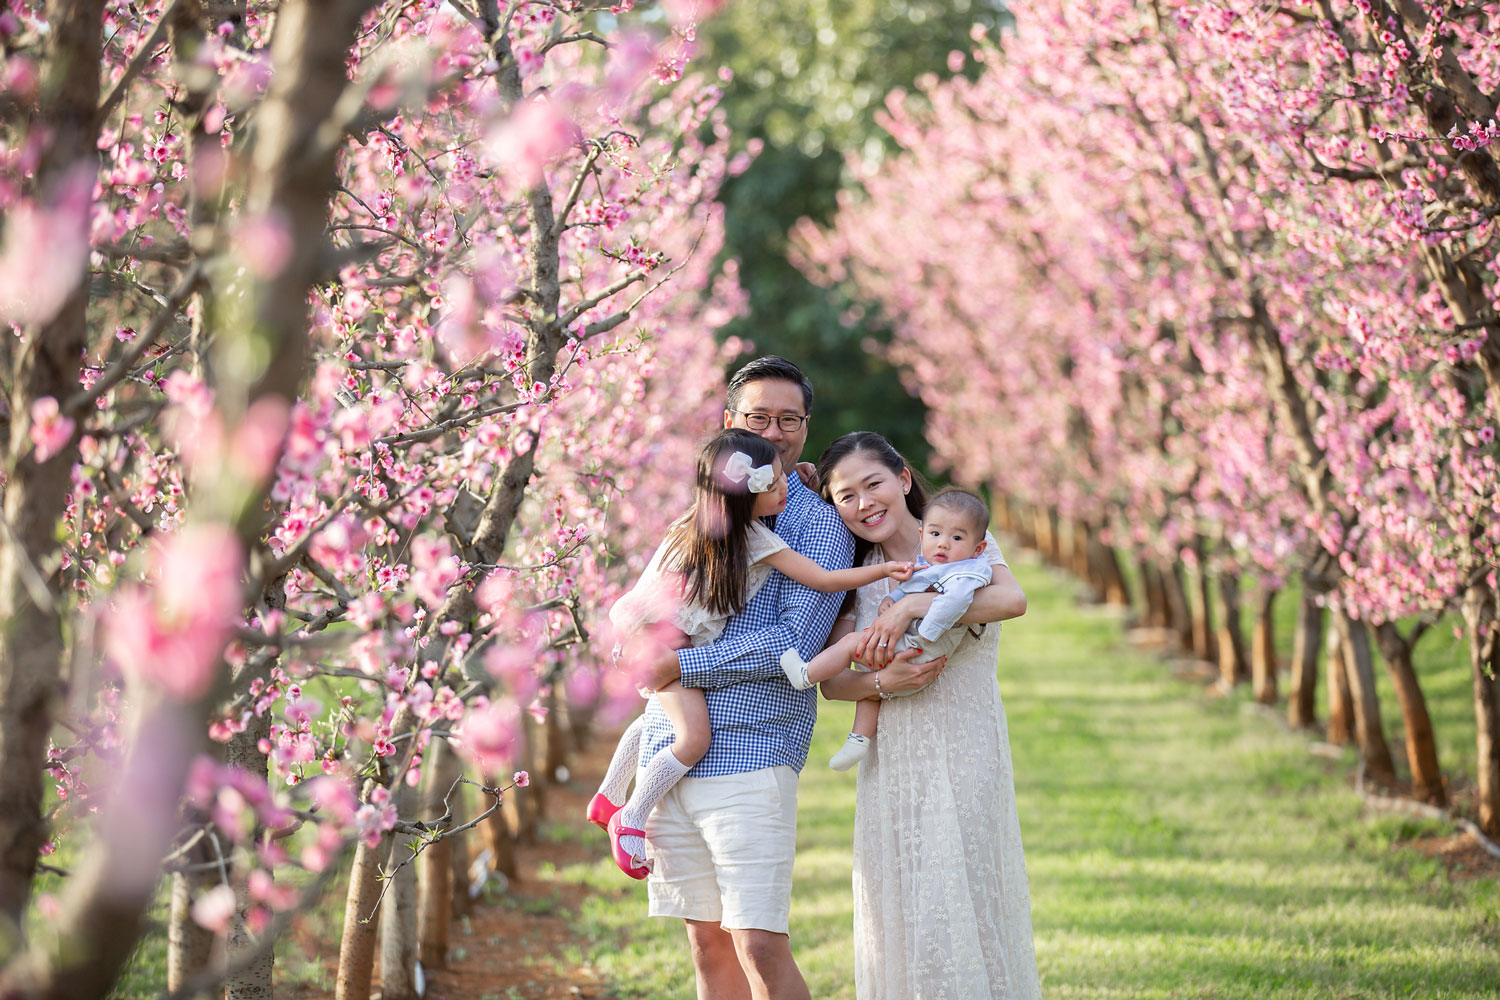 Spring-Blossoms-in-Perth.jpg